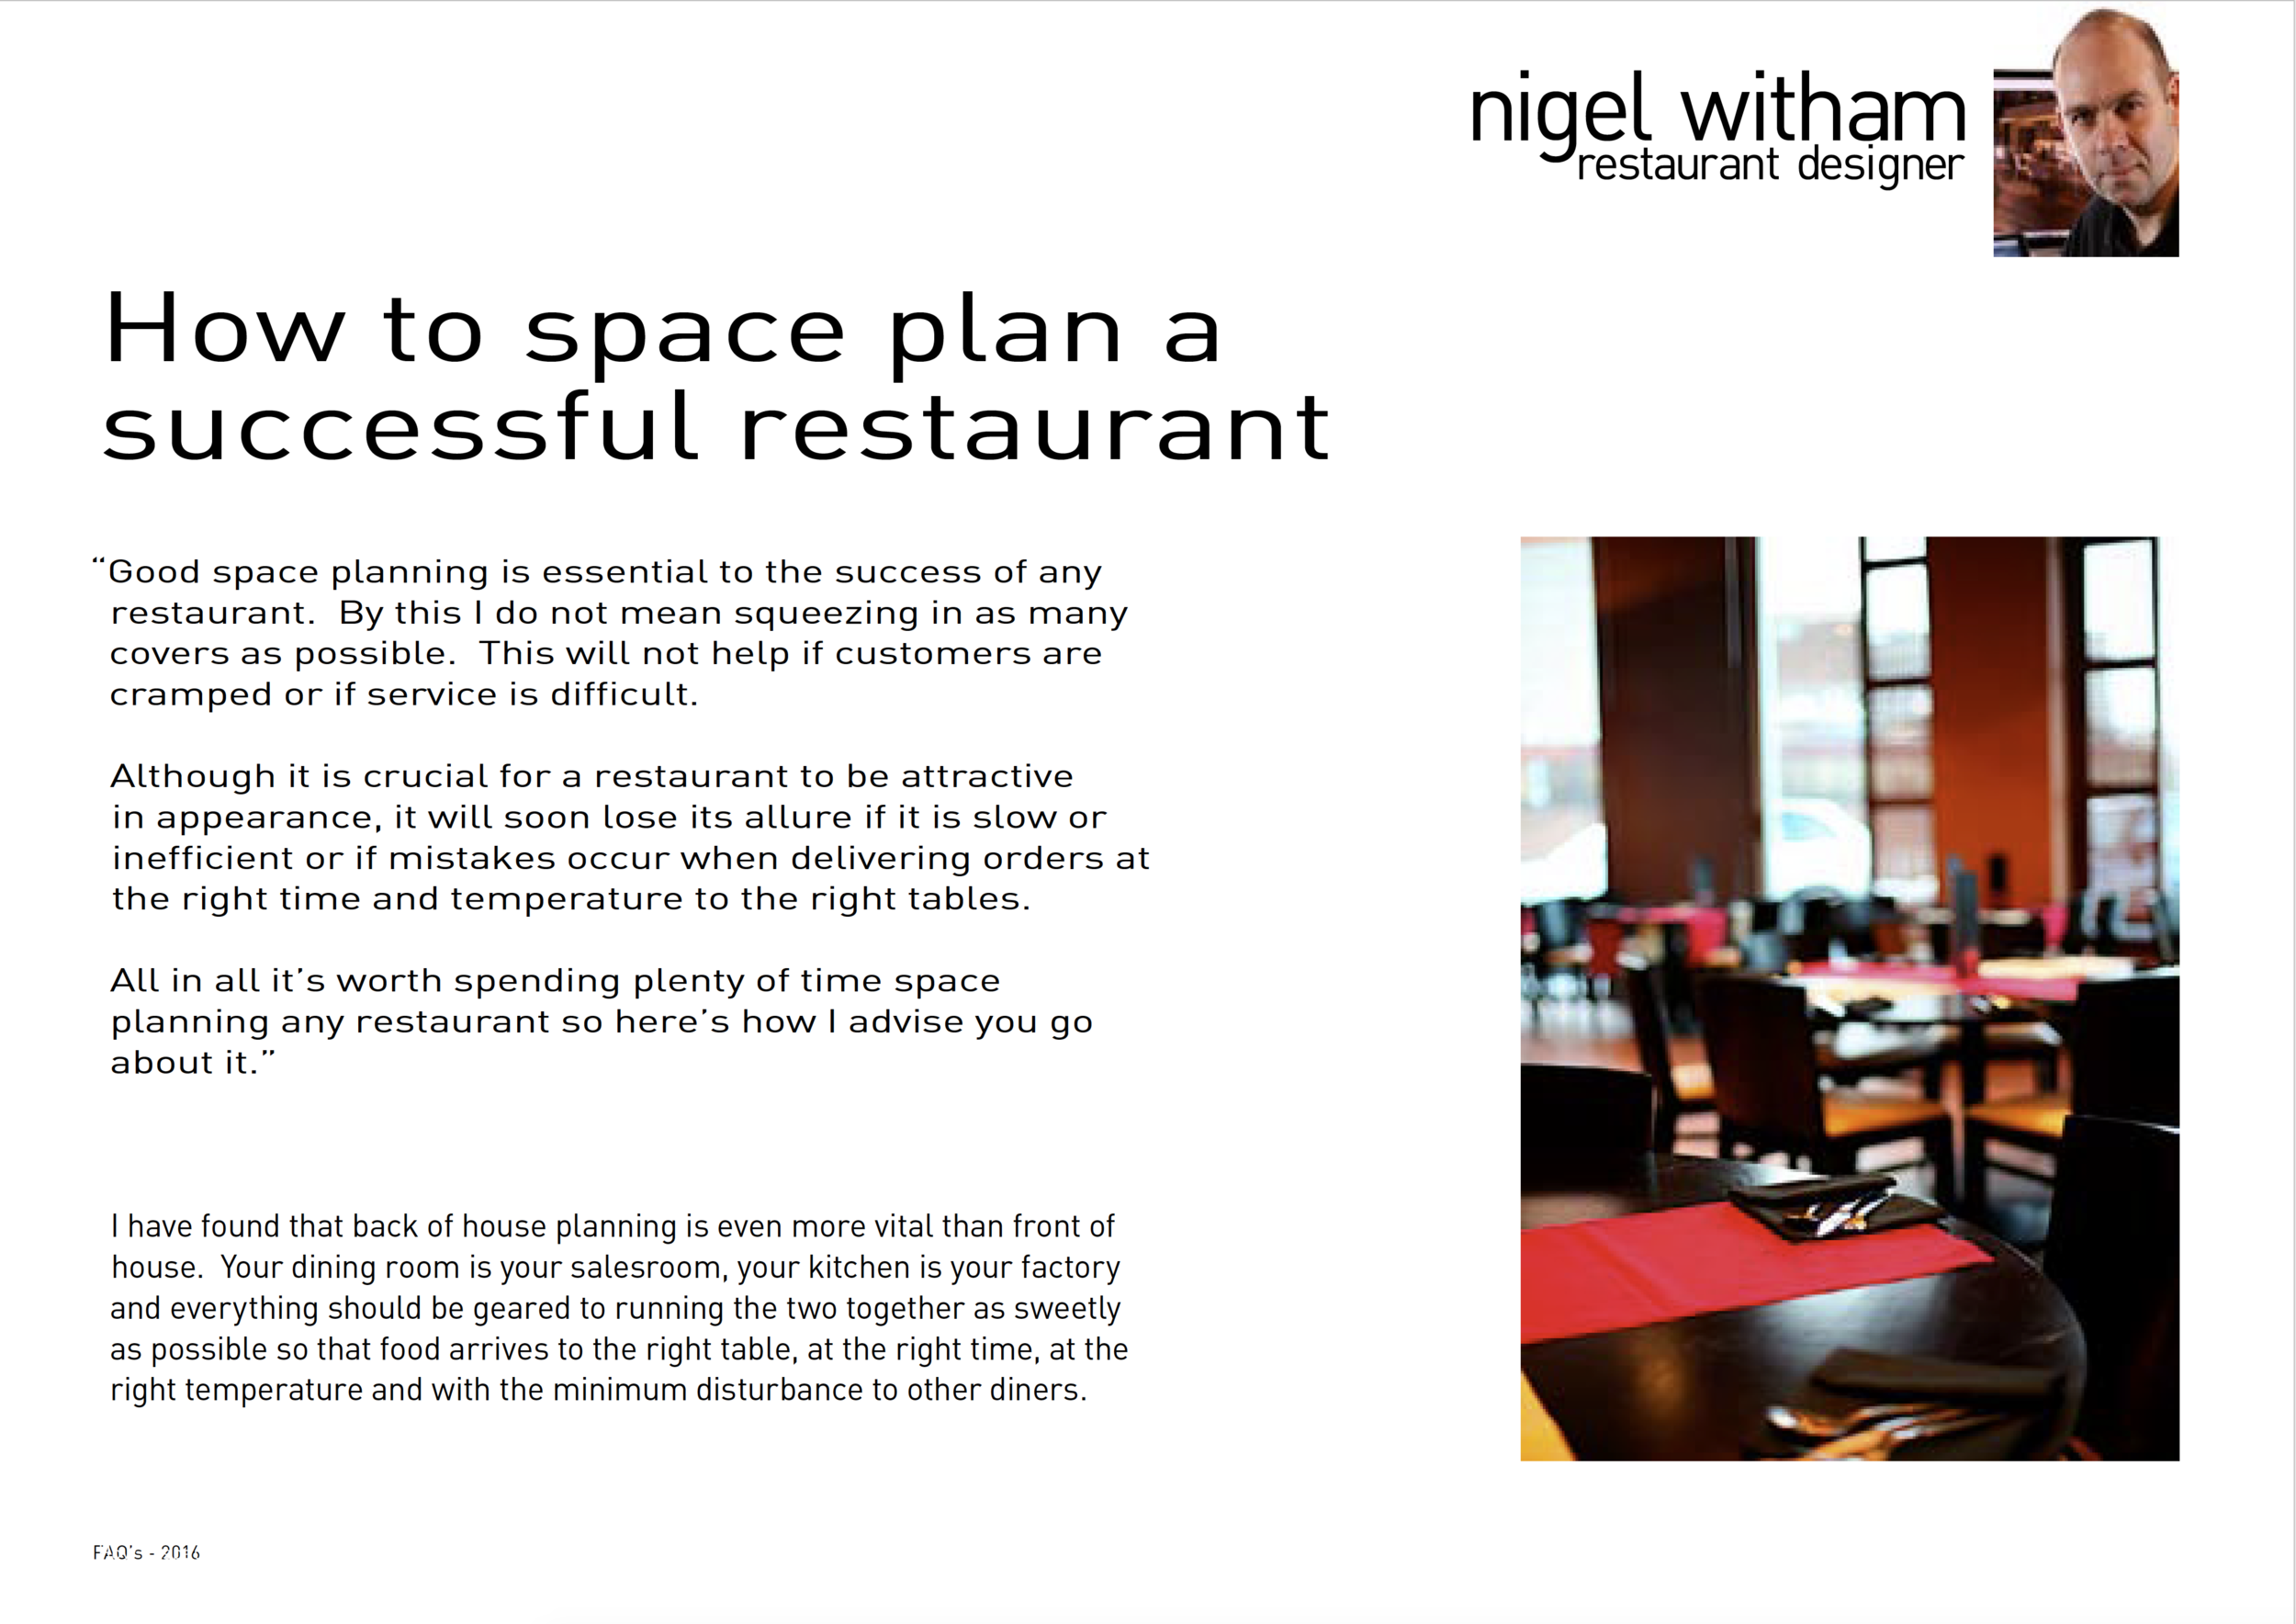 How To Space Plan a Successful Restaurant